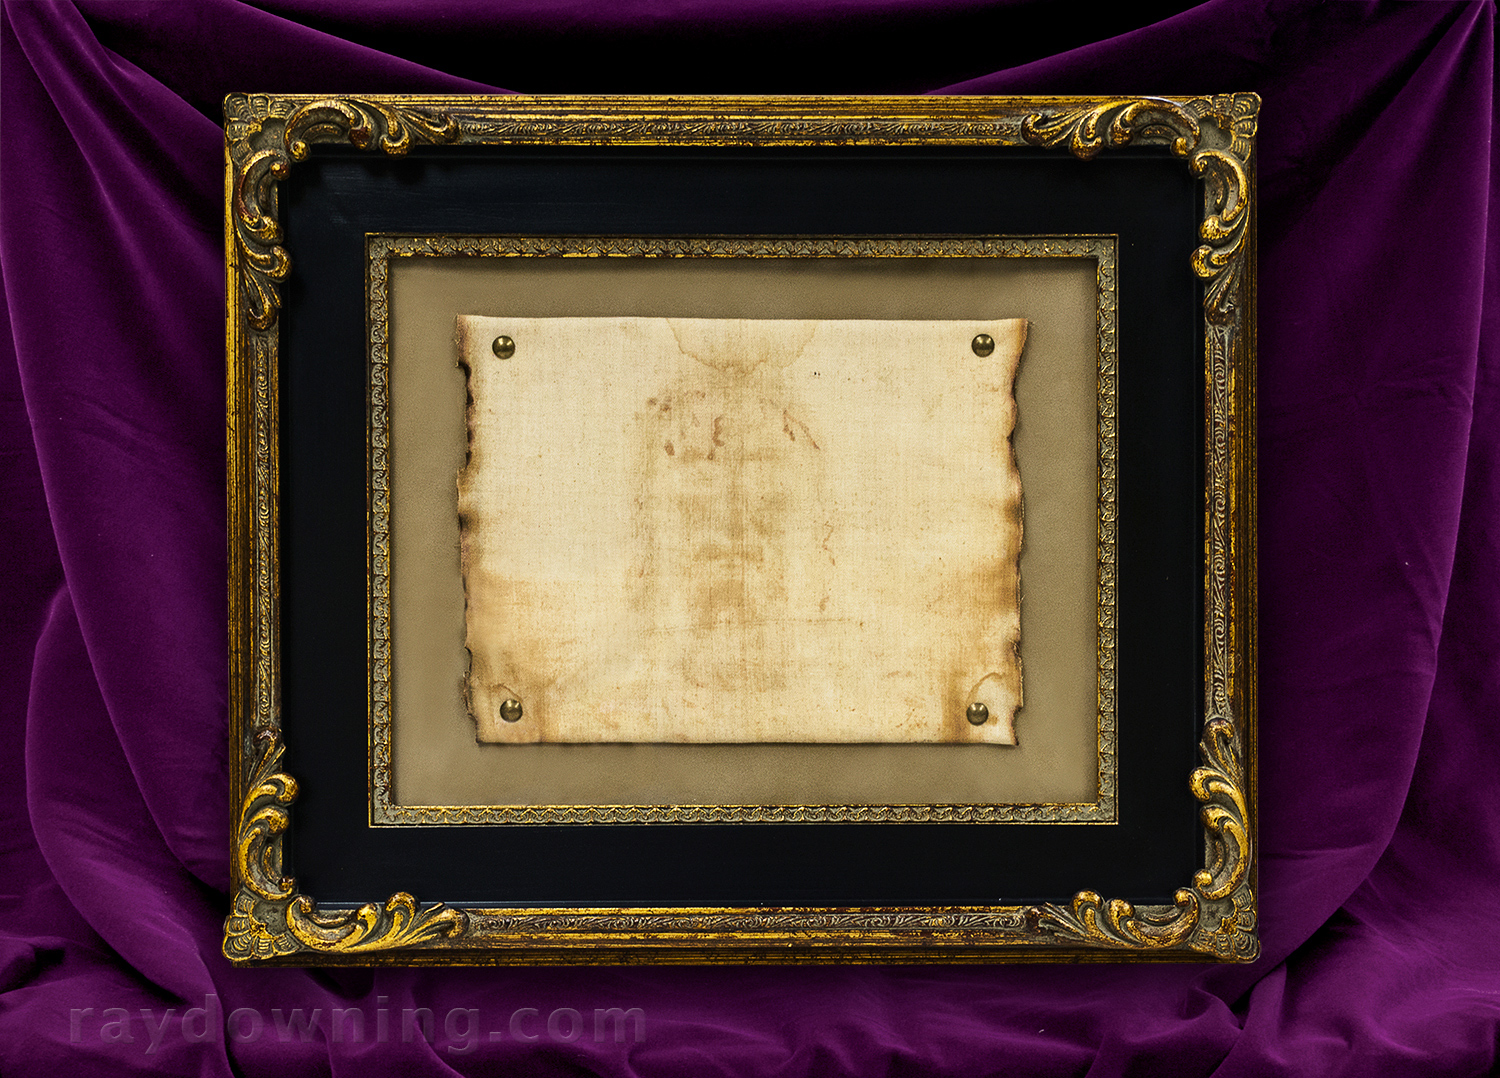 Shroud of Turin framed black and gold